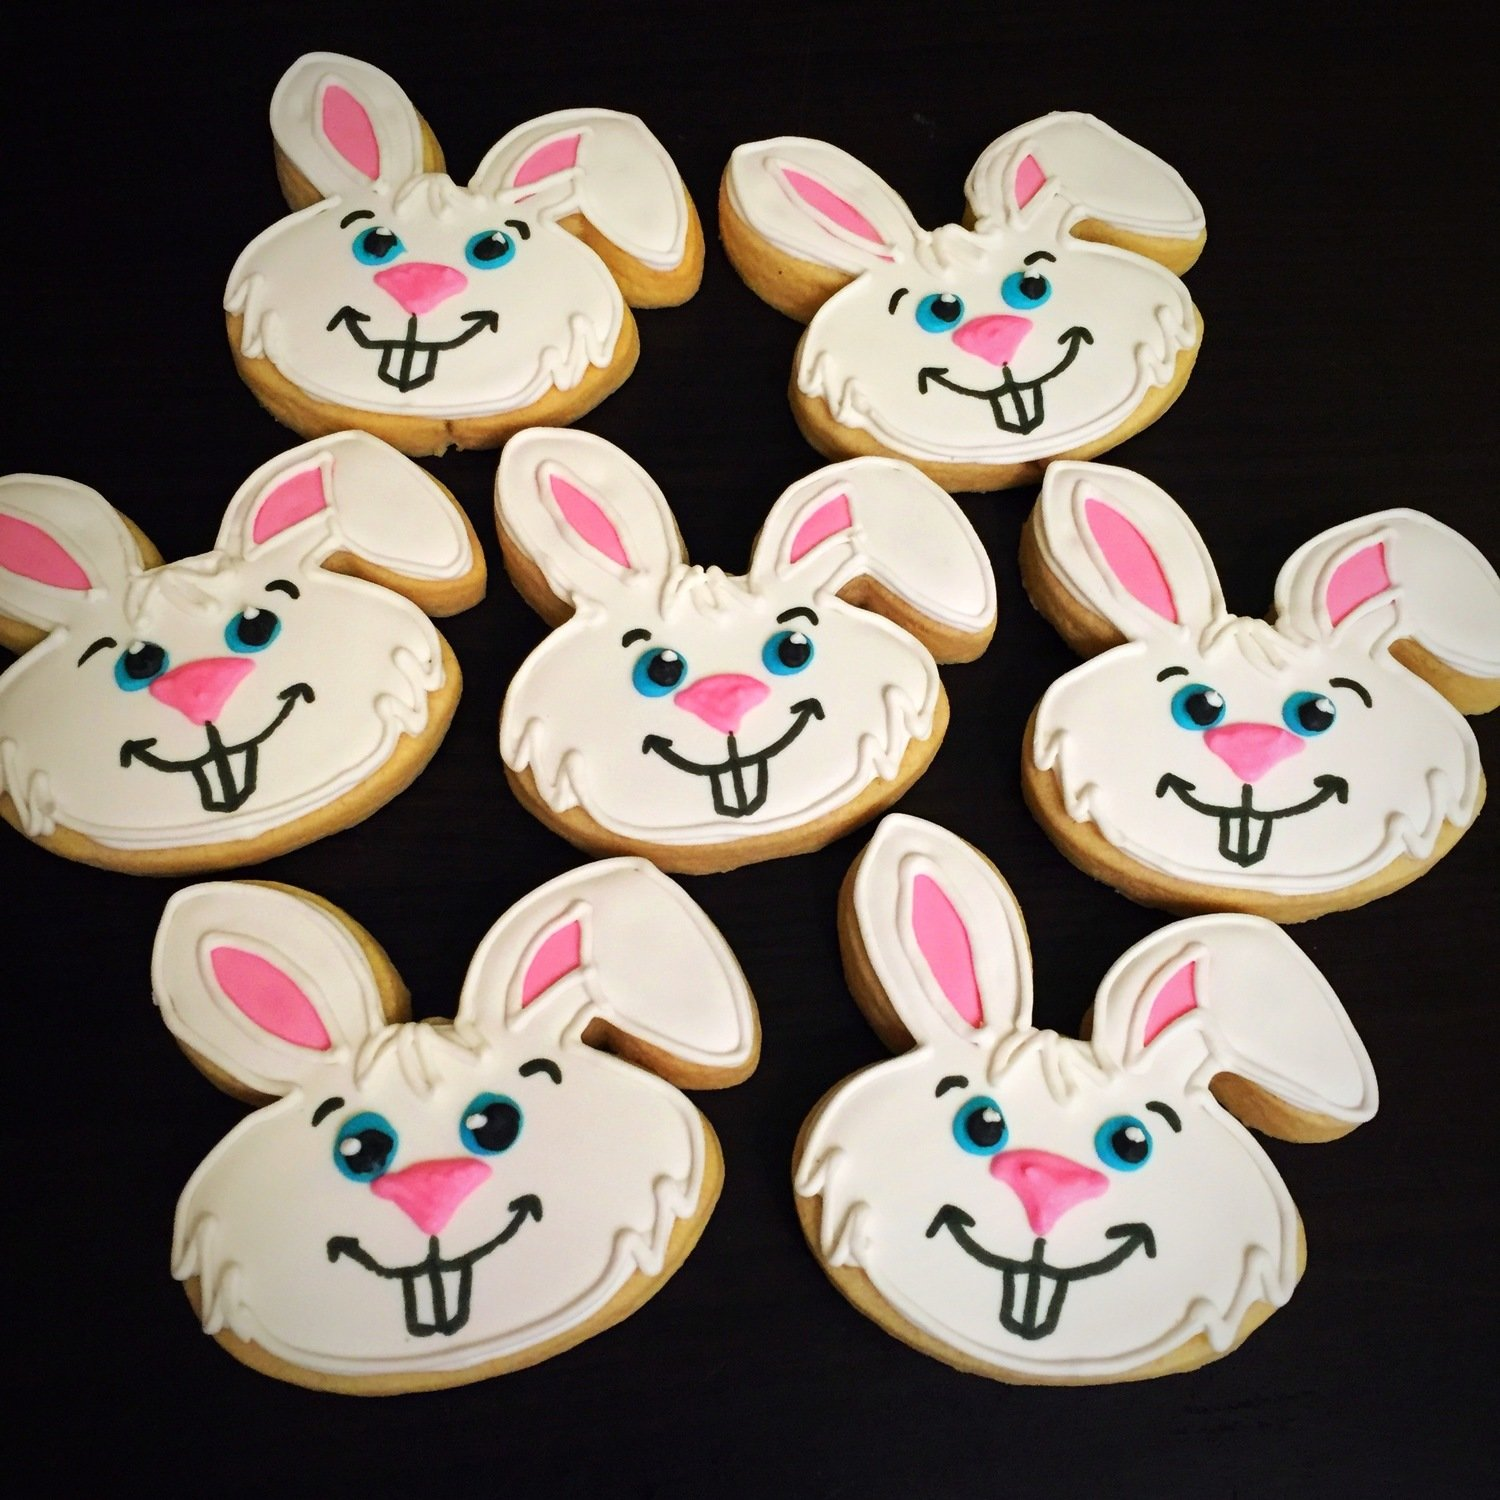 BUNNY RABBIT COOKIES (1 DOZEN)